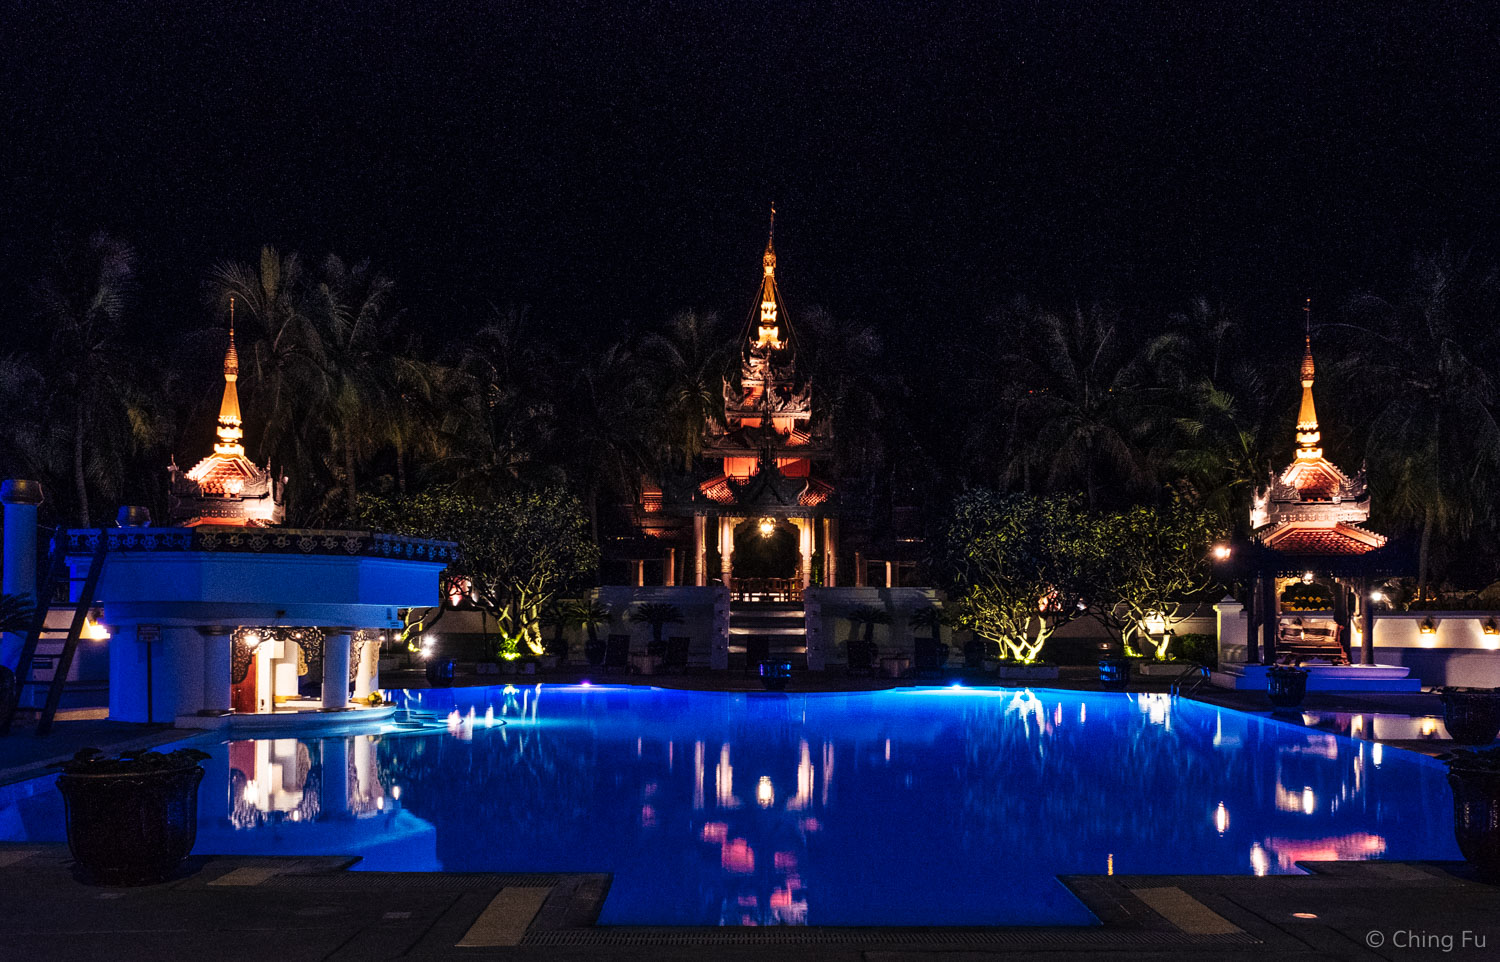 Mandalay Hill Resort's pool. If you stay there, be sure to check out the spa area at night. I'd love to have a home and garden that resembles it.